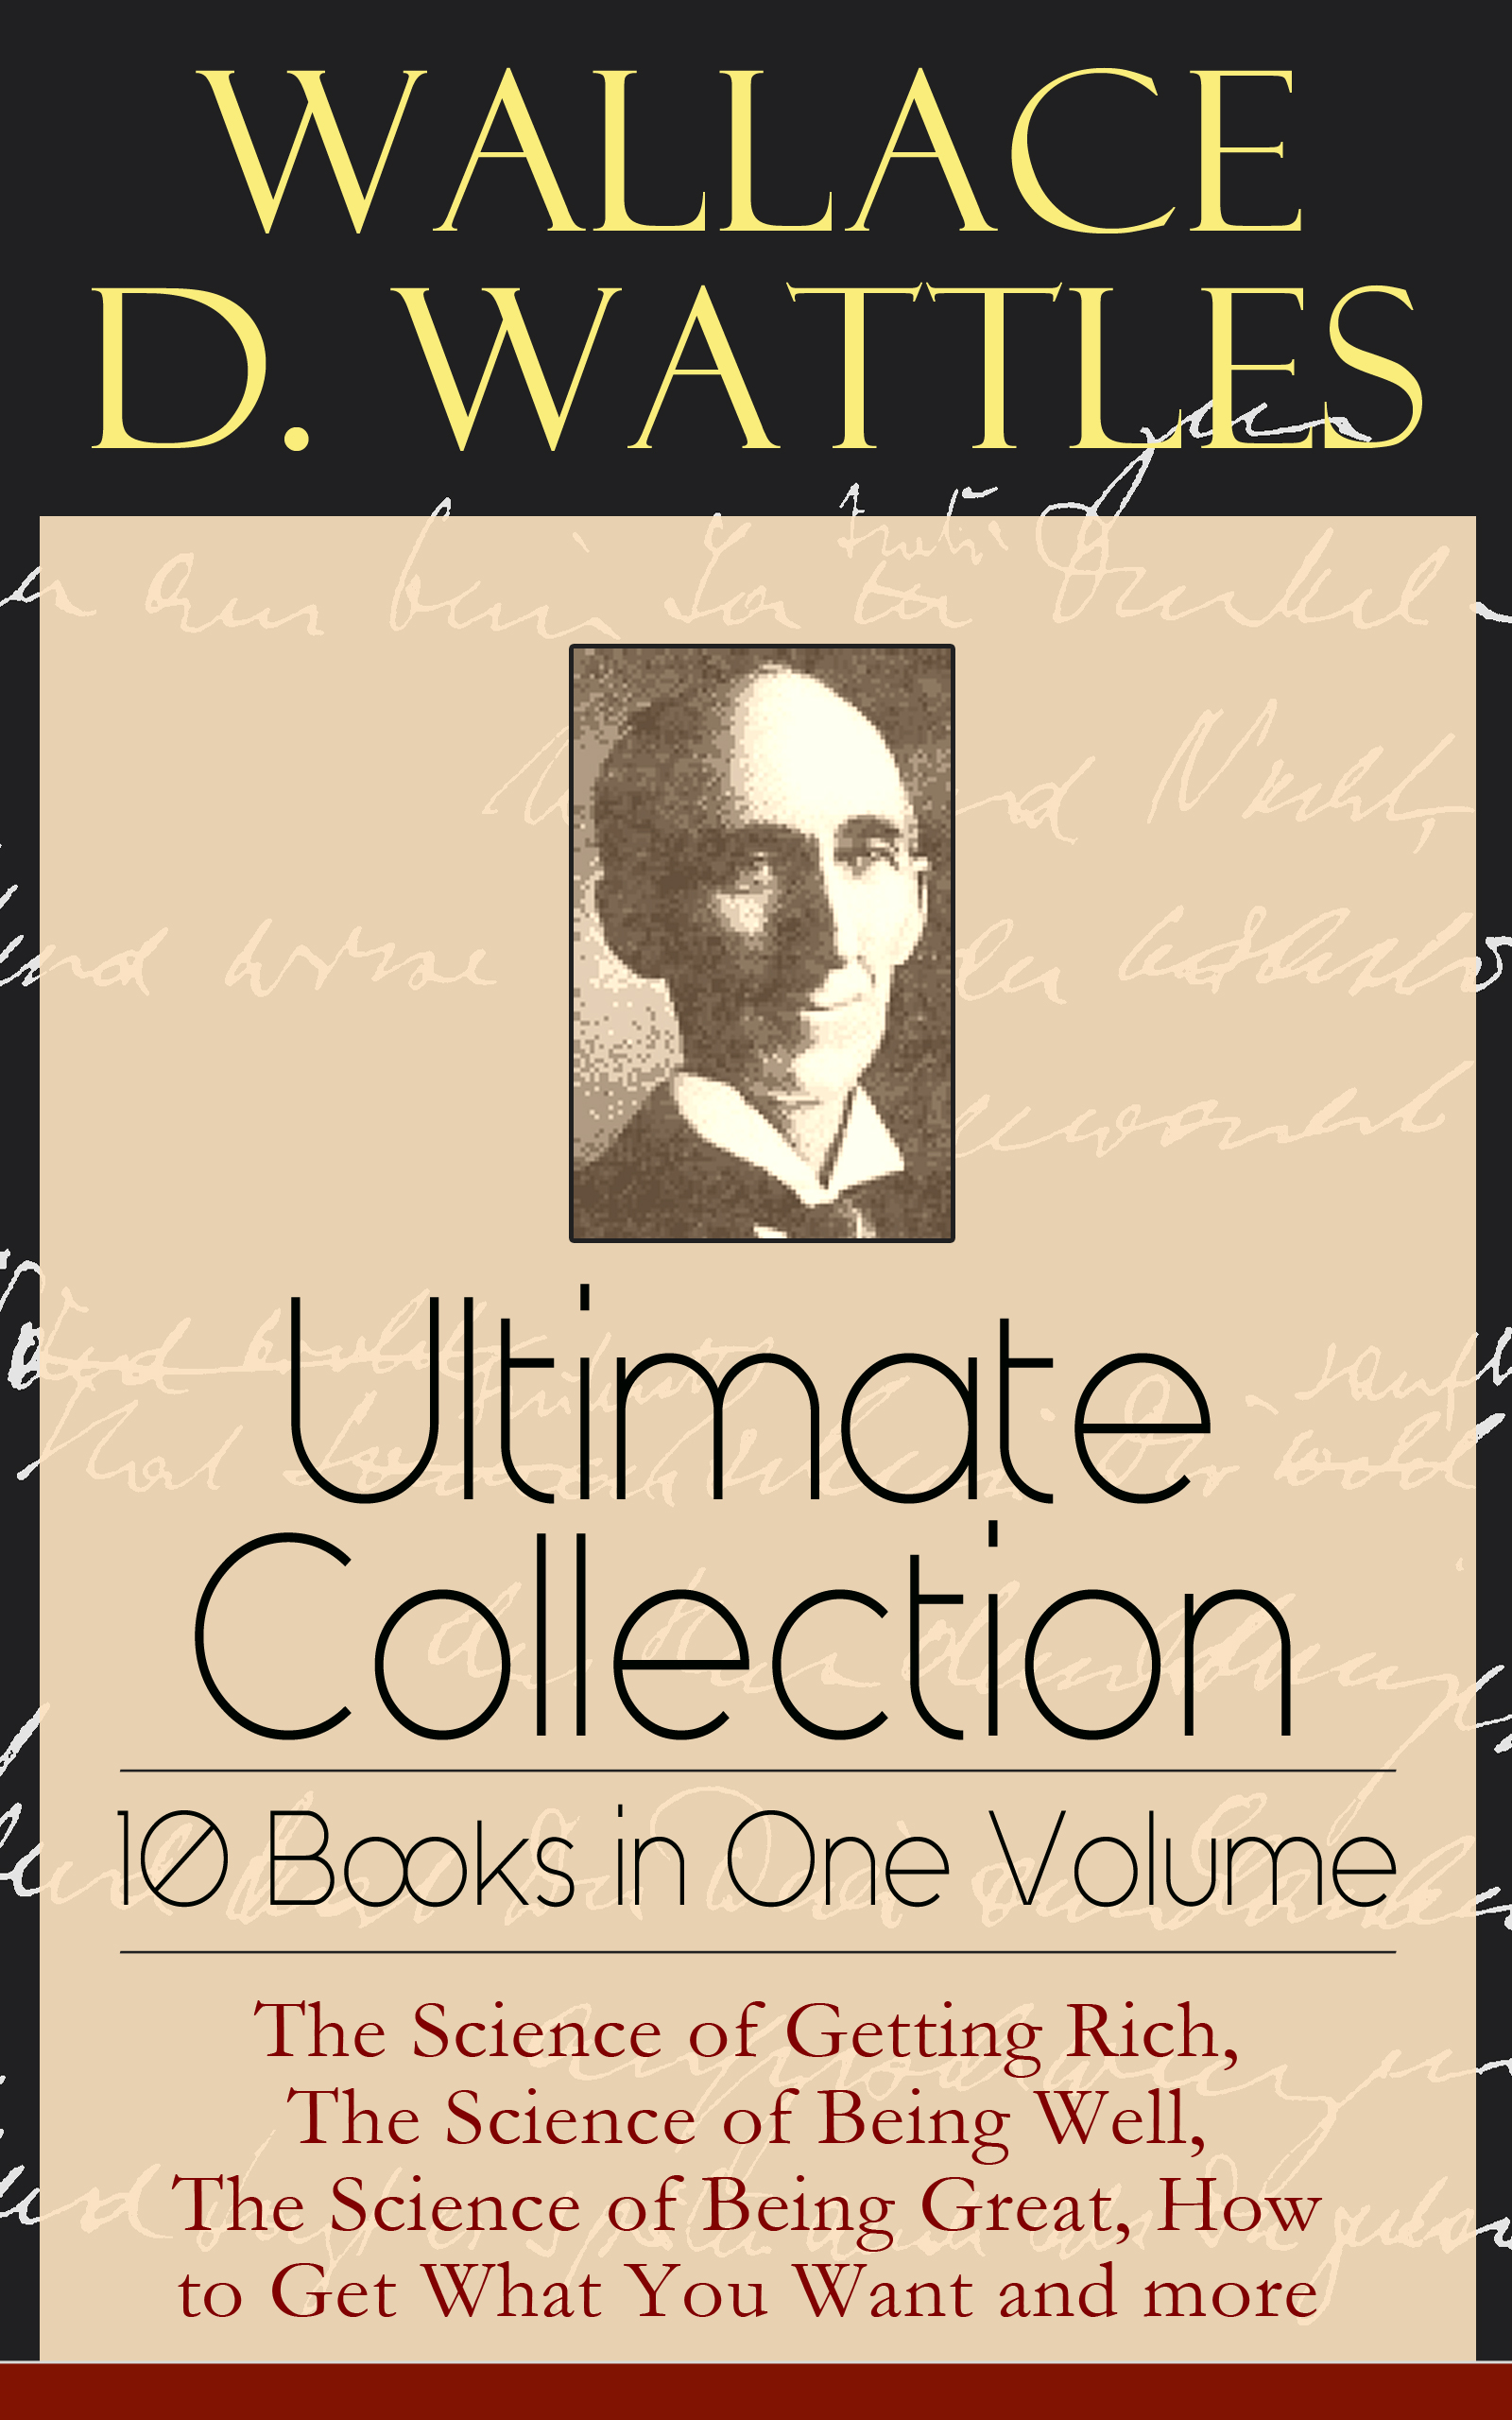 Wallace D. Wattles Wallace D. Wattles Ultimate Collection - 10 Books in One Volume: The Science of Getting Rich, The Science of Being Well, The Science of Being Great, How to Get What You Want and more gill hasson happiness how to get into the habit of being happy